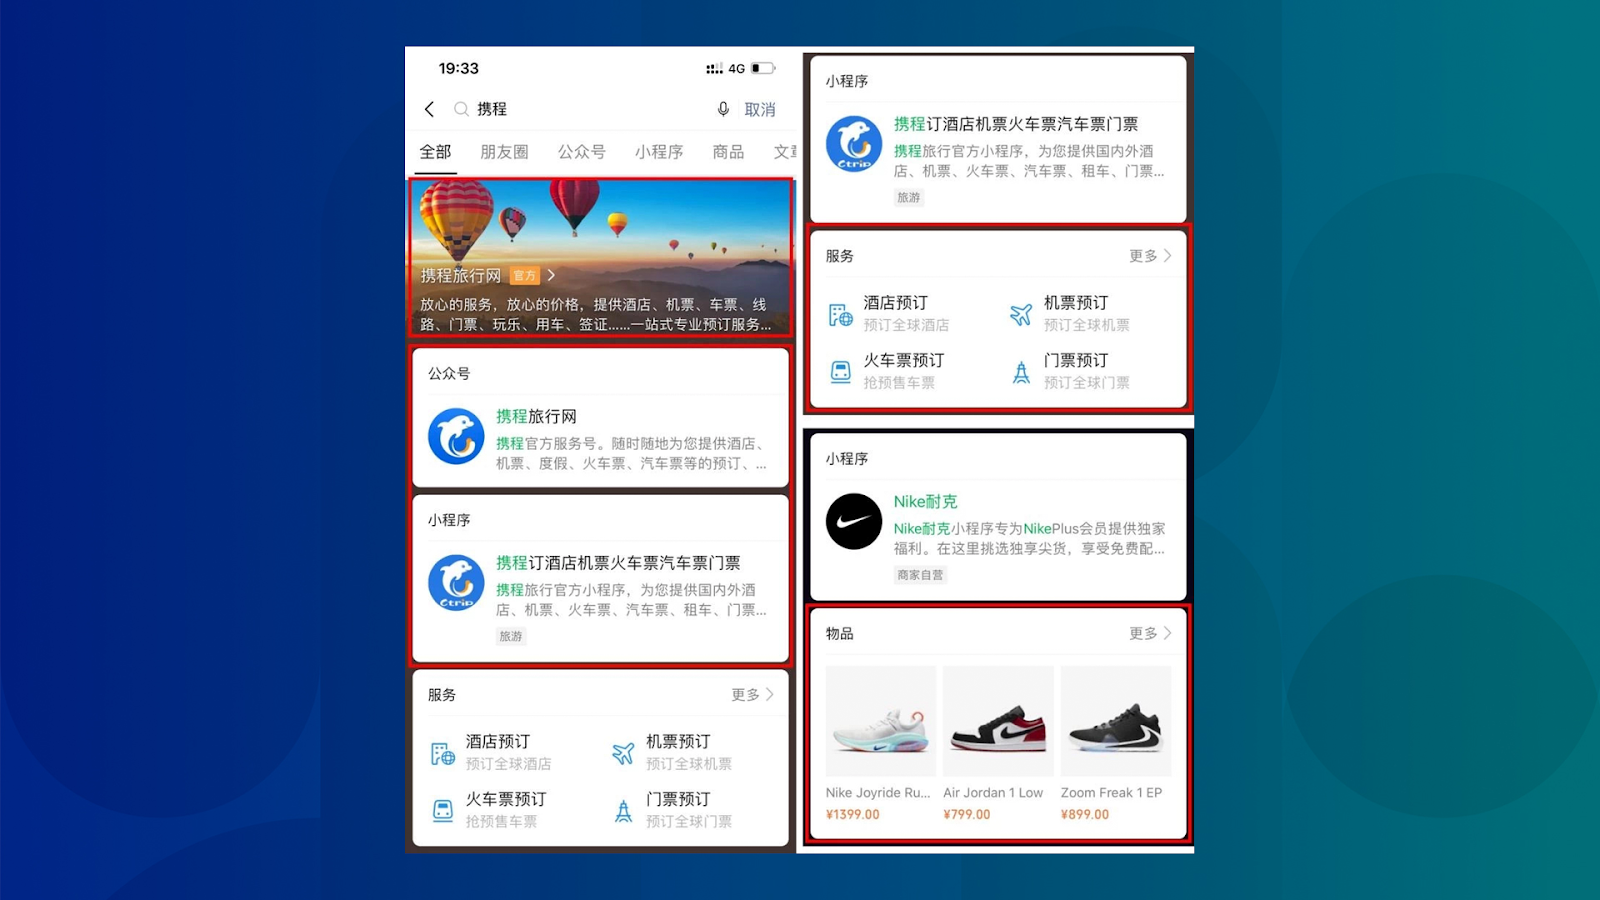 Multi-purpose WeChat wants to be a better search engine